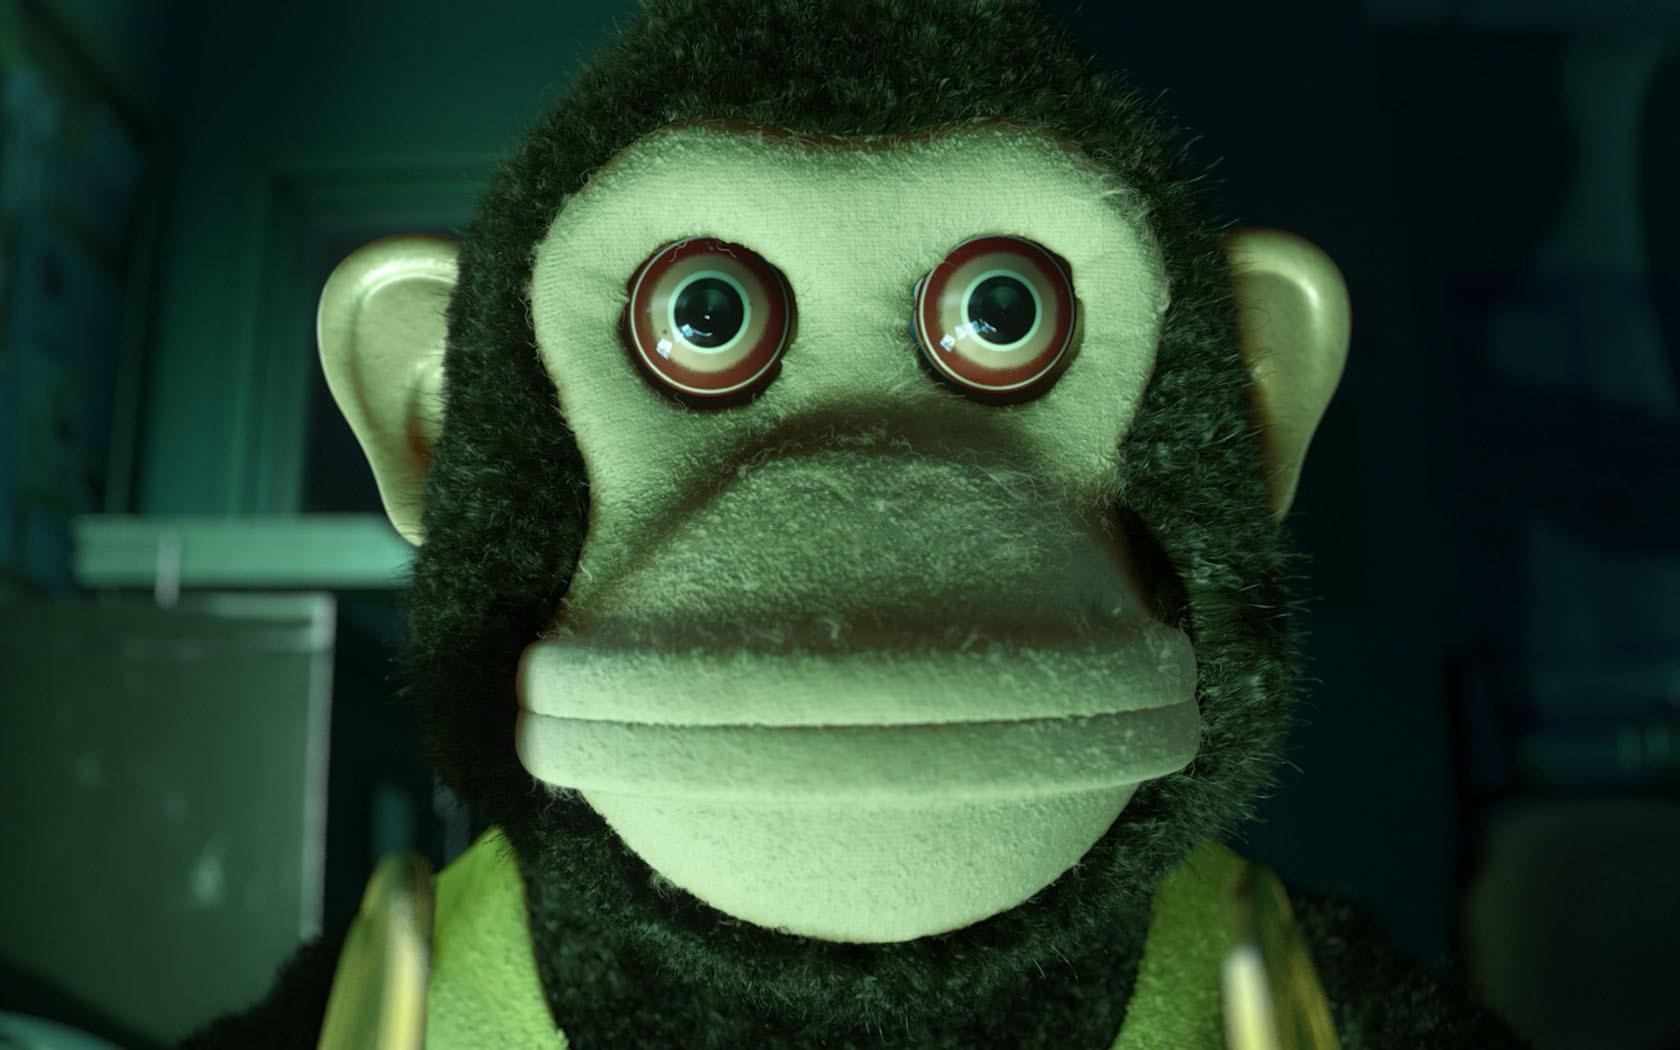 Toy Story 3 Wallpapers Hd Monkey From Toy Story 3 Toy